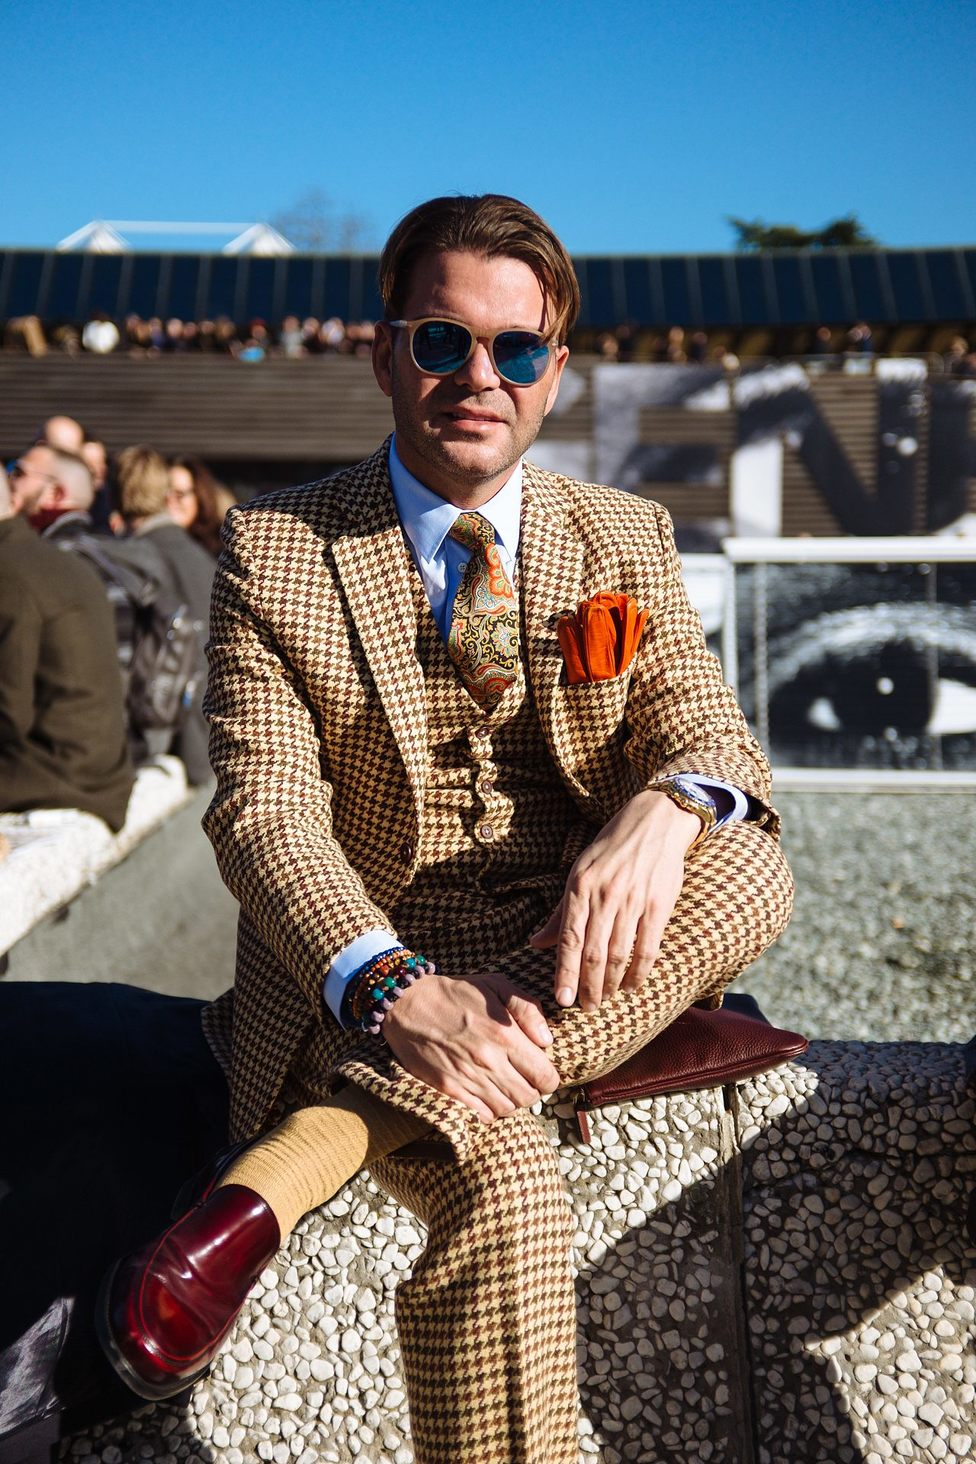 Firenze-89-Pitti-Uomo-Fashion-Photography-16